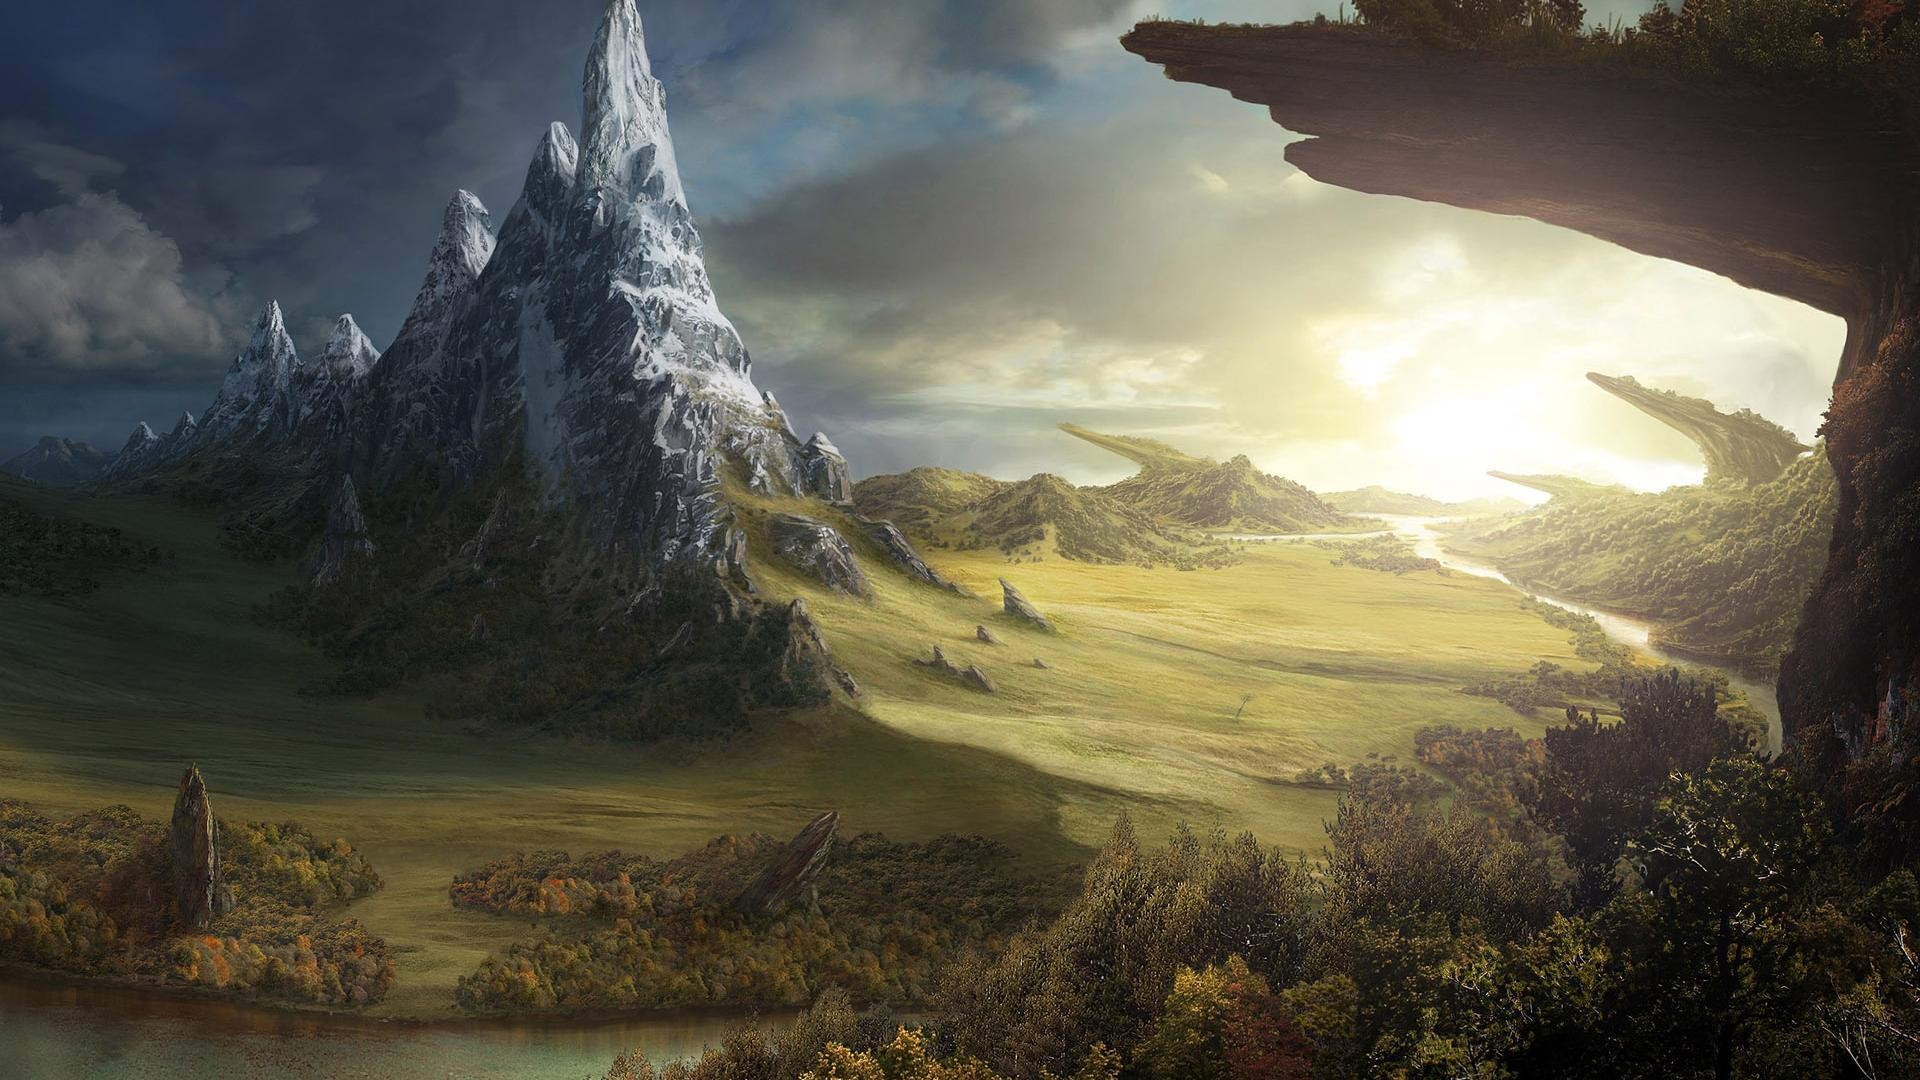 1920x1080  The wild mountain scenery desktop background wide wallpapers:1280x800,1440x900,1680x1050  -